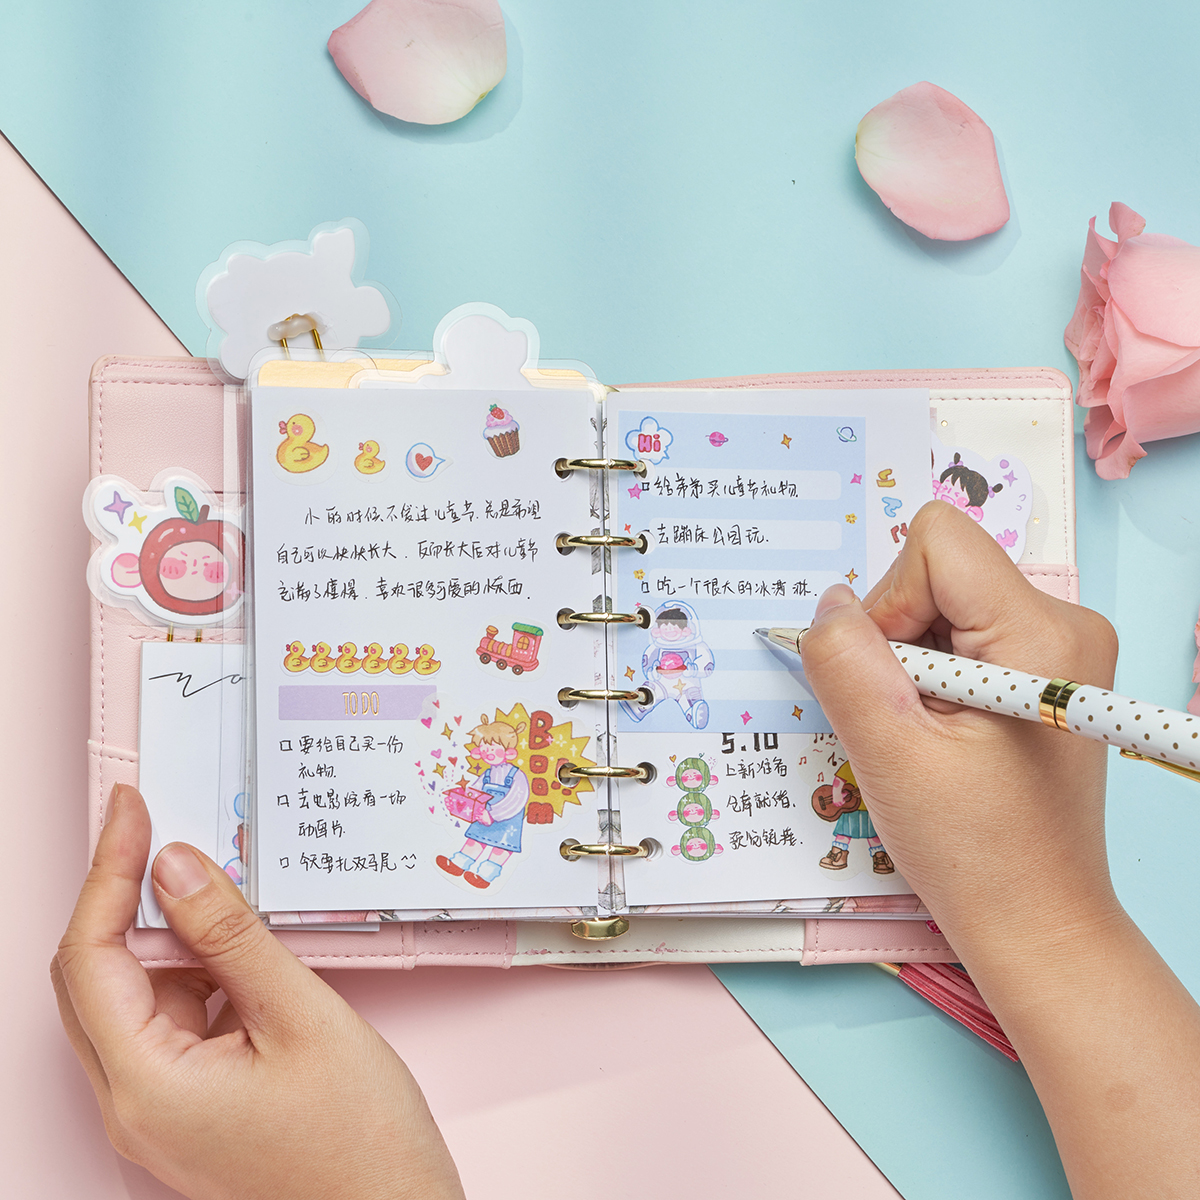 Lovedoki 2019 Laser Fantasy Color Notebook A7 Ring Binder Planner with Large Wallet Personal Pocket Diary Book Gift Stationery